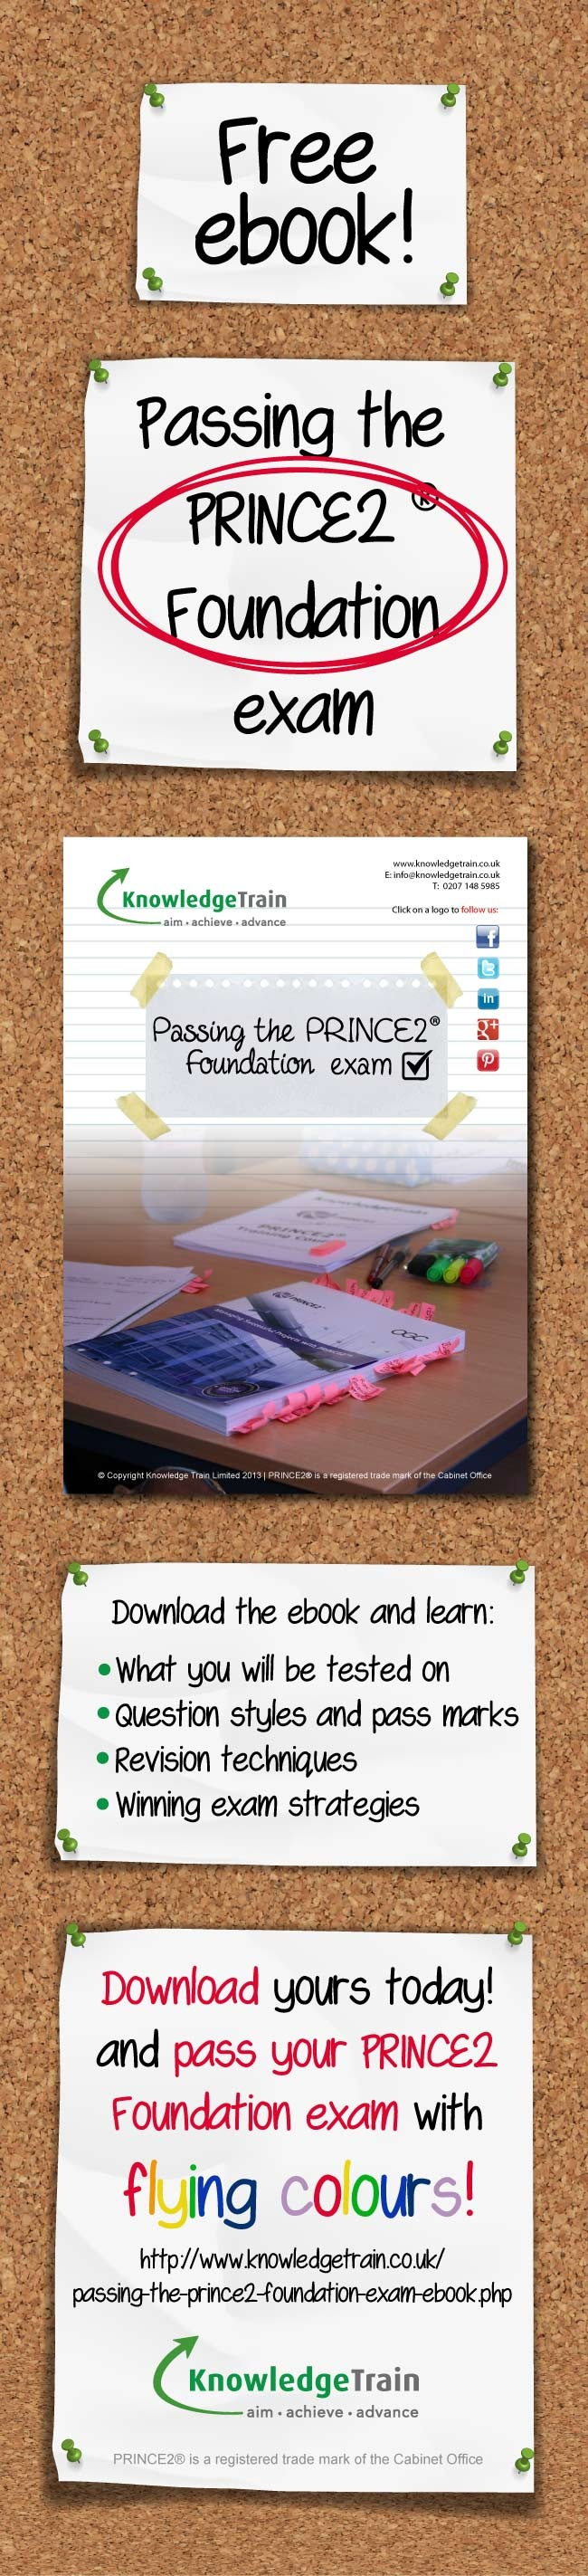 Learn the secrets to passing the PRINCE2 Foundation exam in this free 7 page ebook, written by an experienced PRINCE2 trainer! #prince2 #projectmanagement #ebook #knowledgetrain #prince2exam